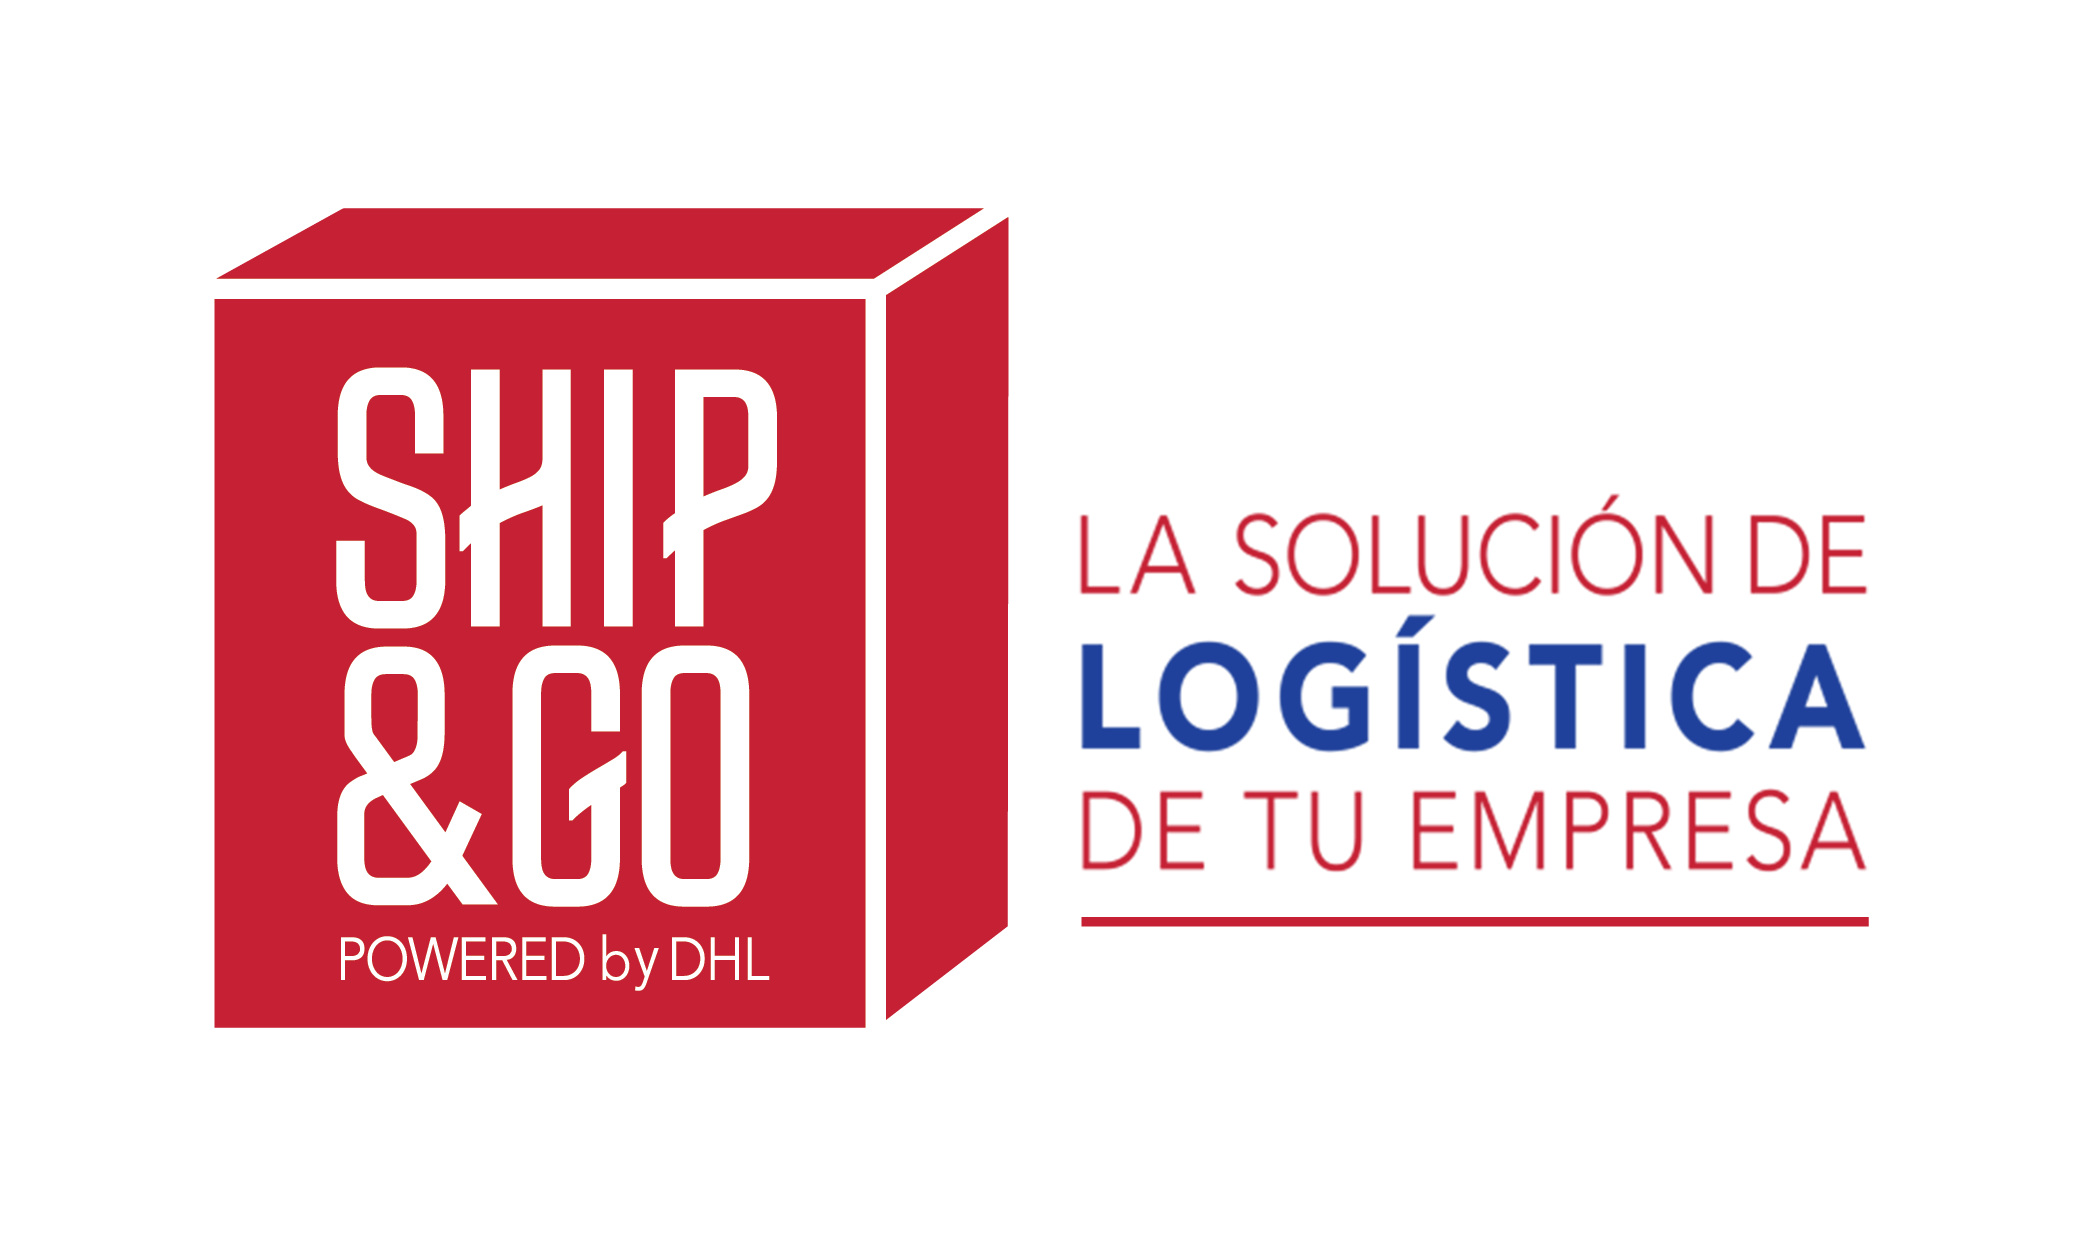 Ship and Go